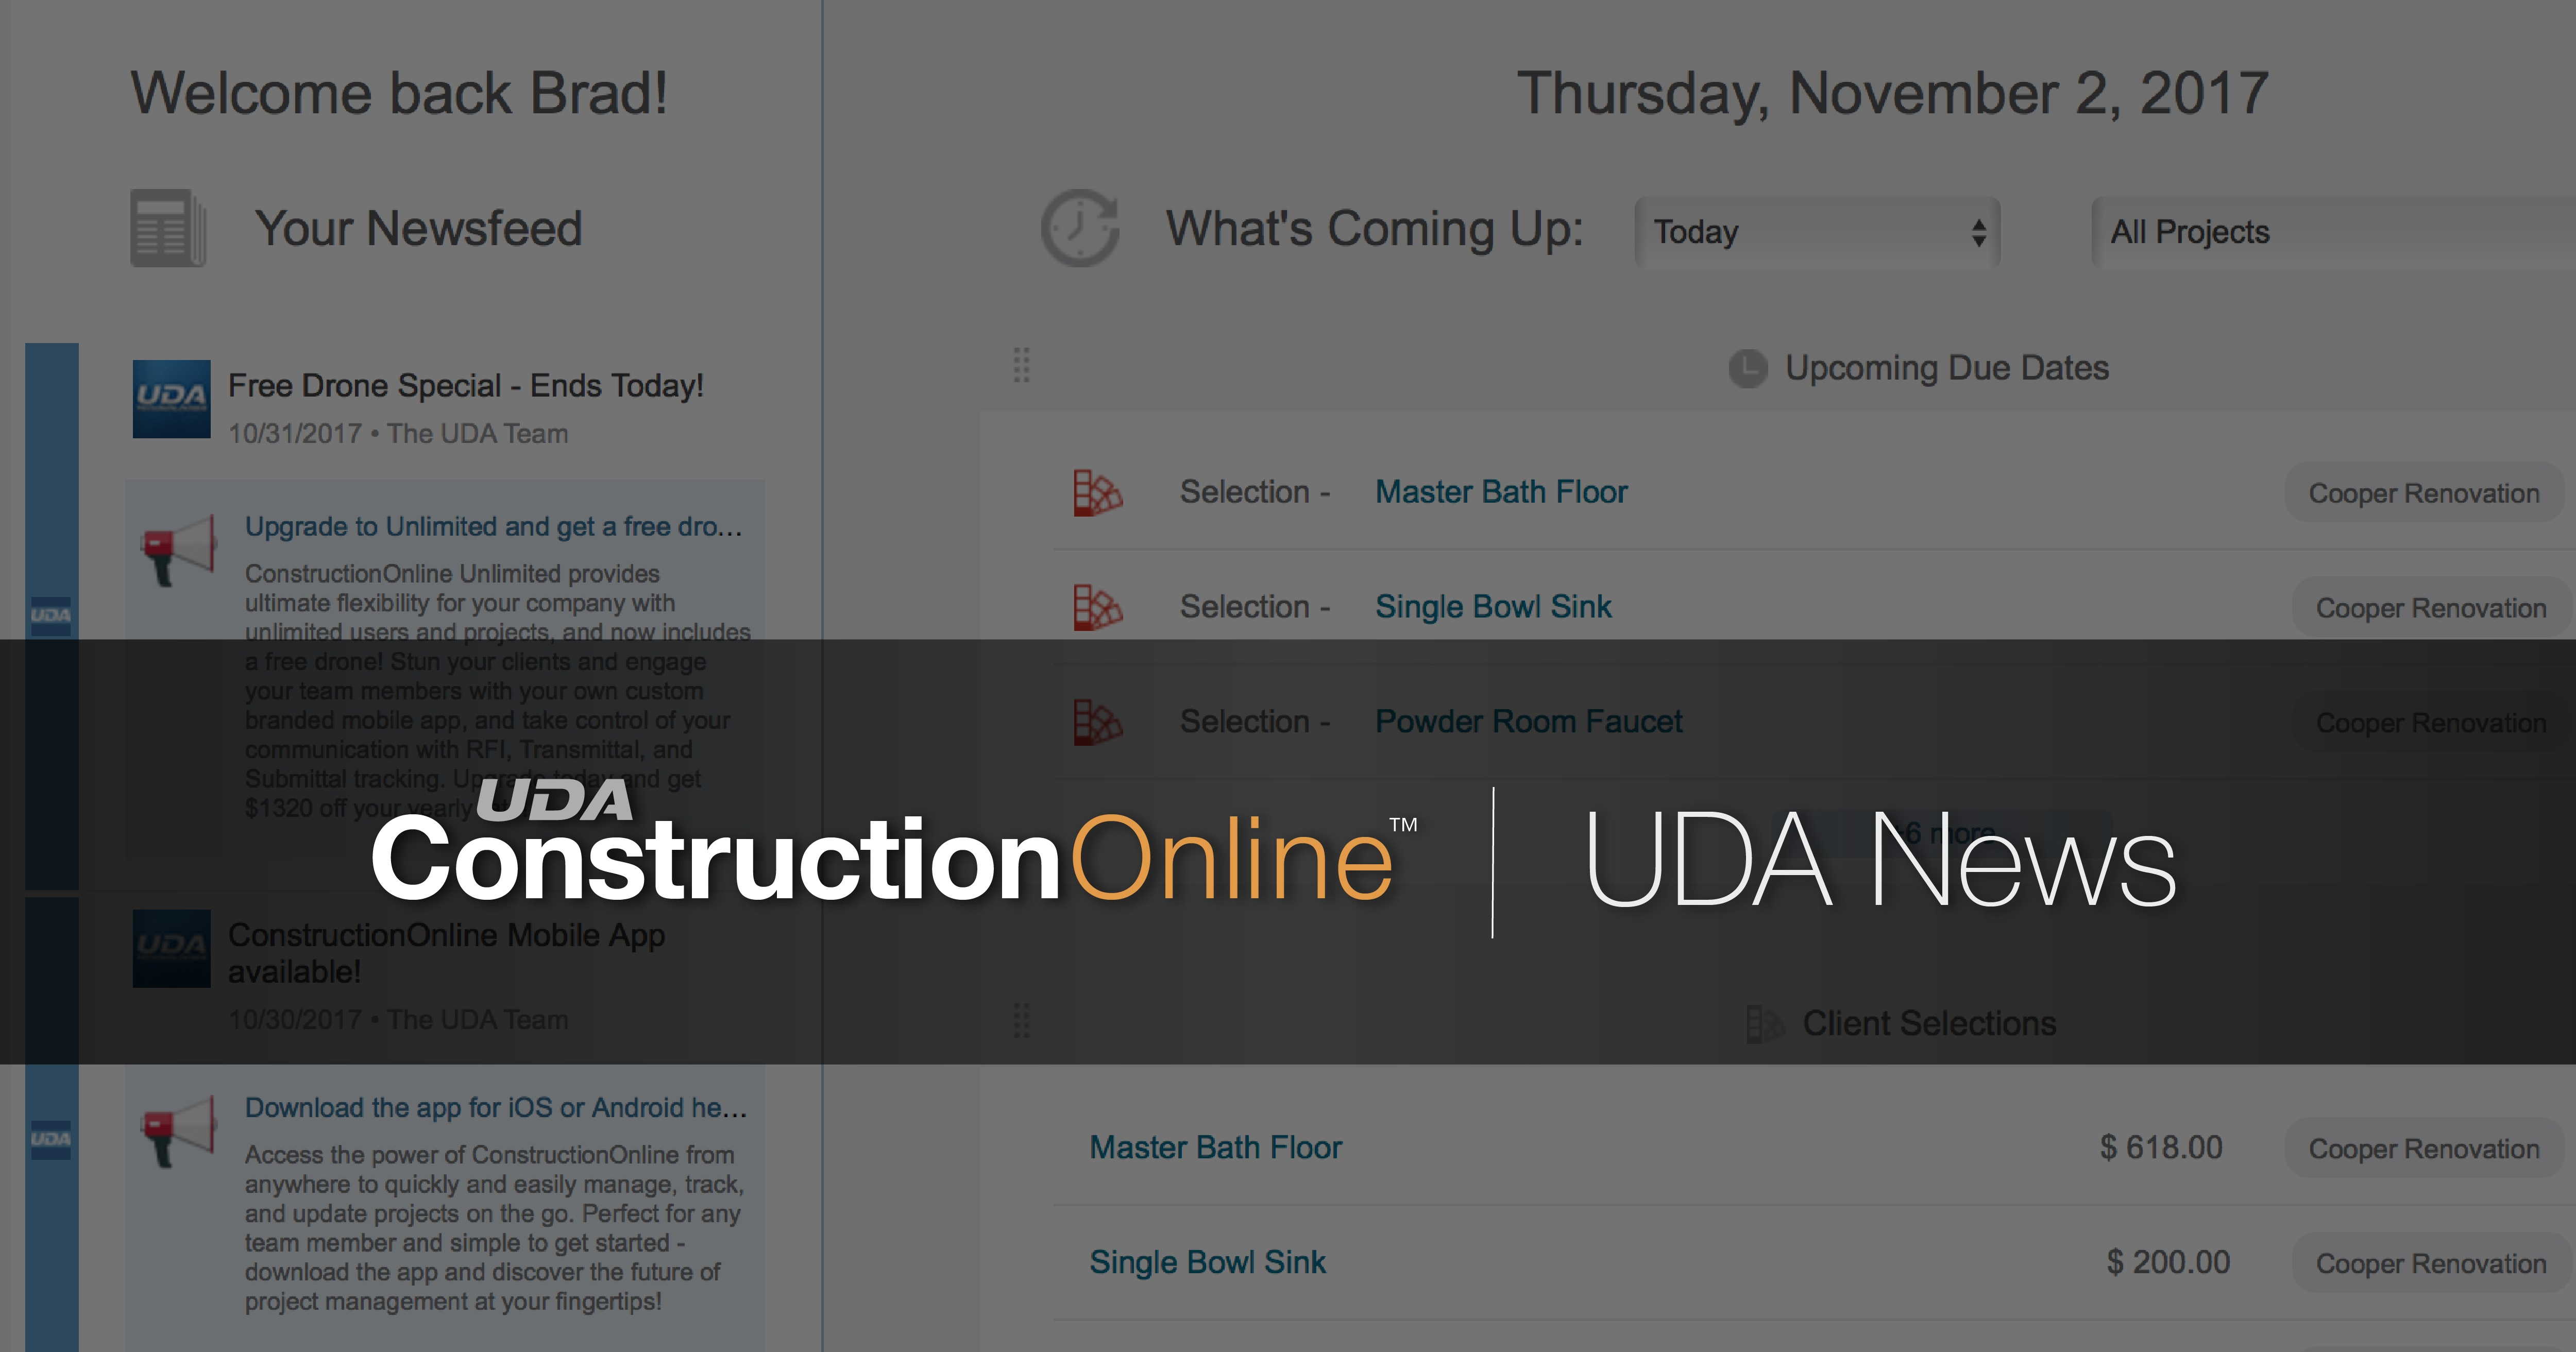 UDA News Brings Company Updates Directly to Customers